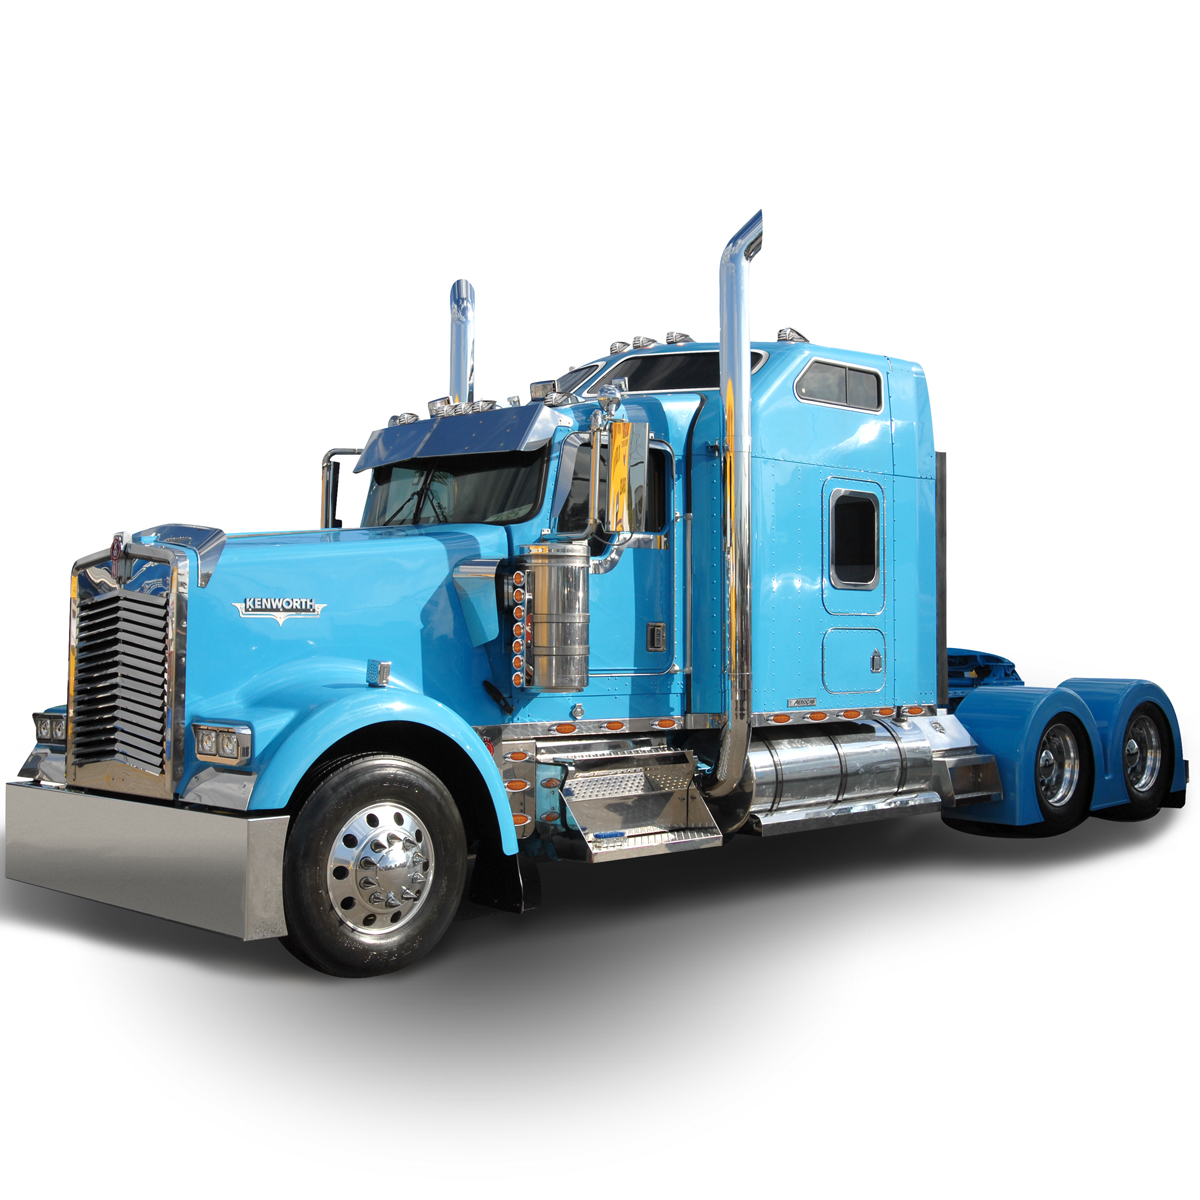 Kenworth - Browse by truck brands